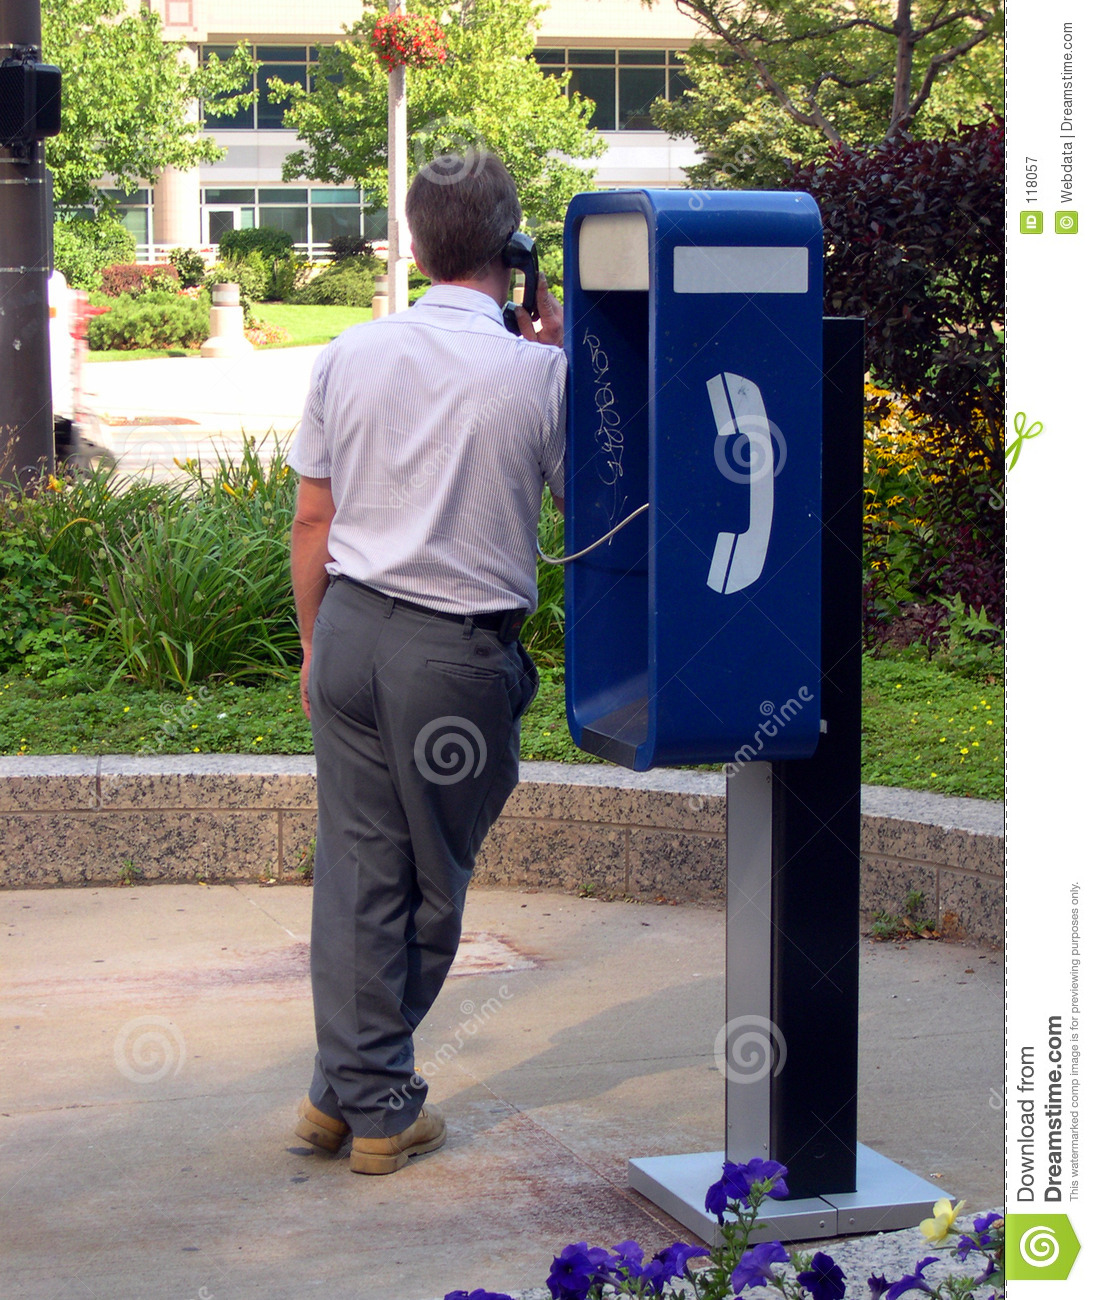 Man on payphone